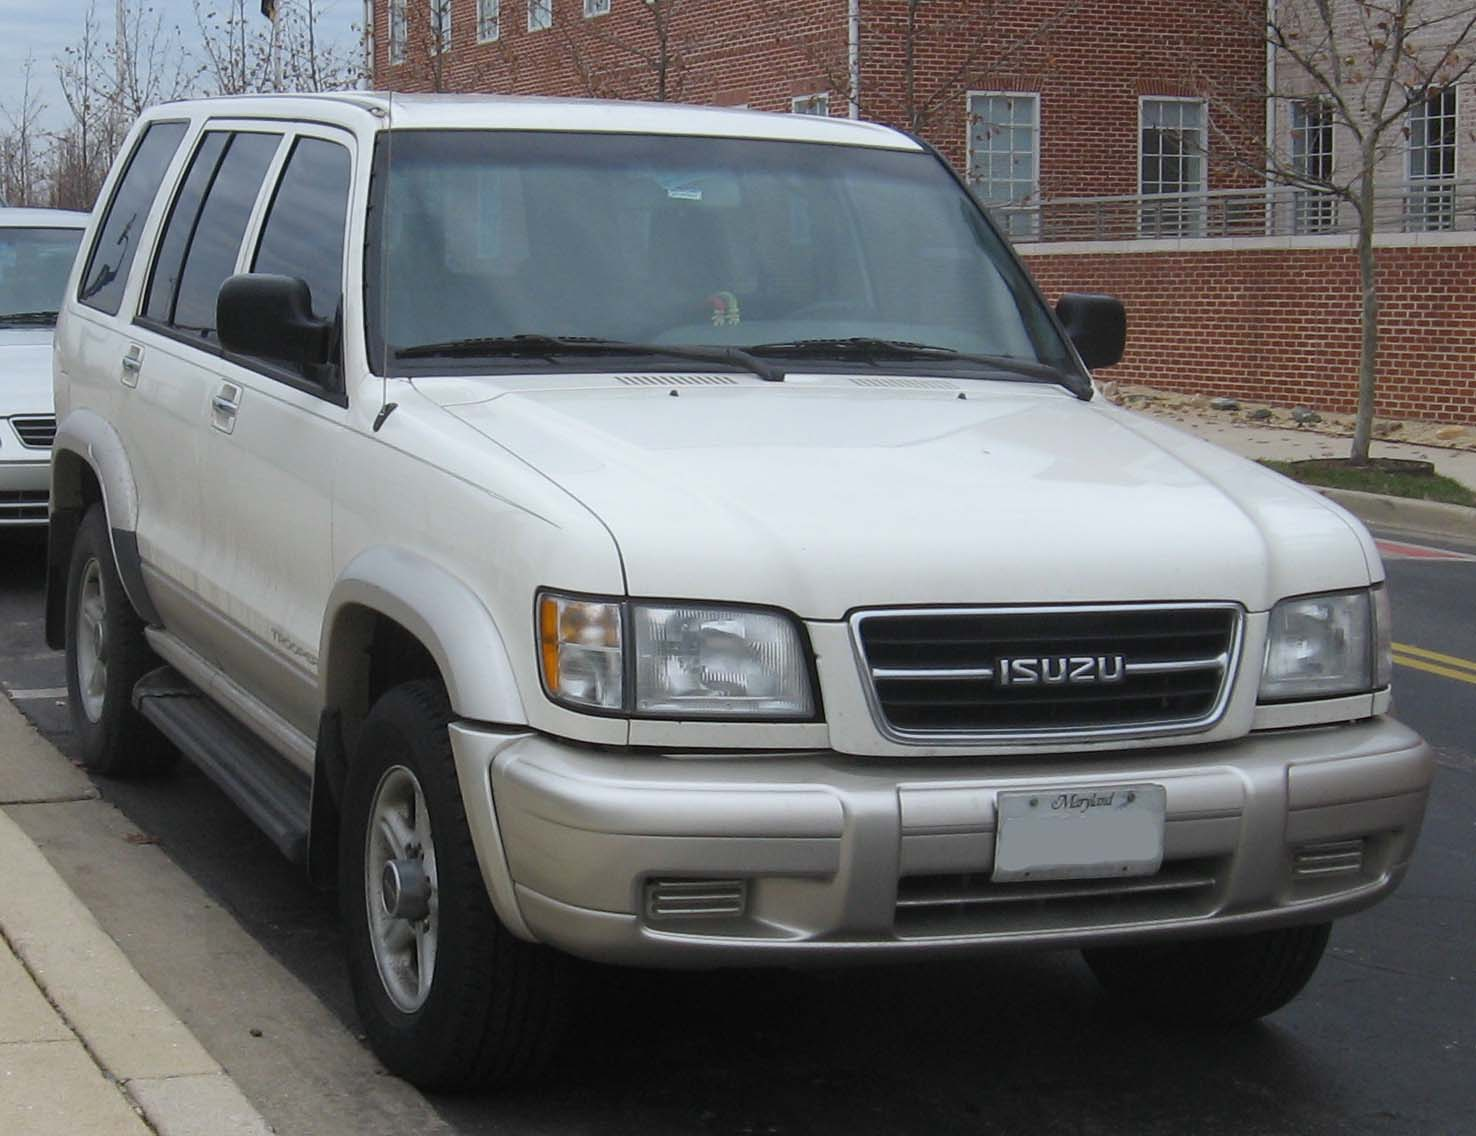 Isuzu Trooper 2000 #5